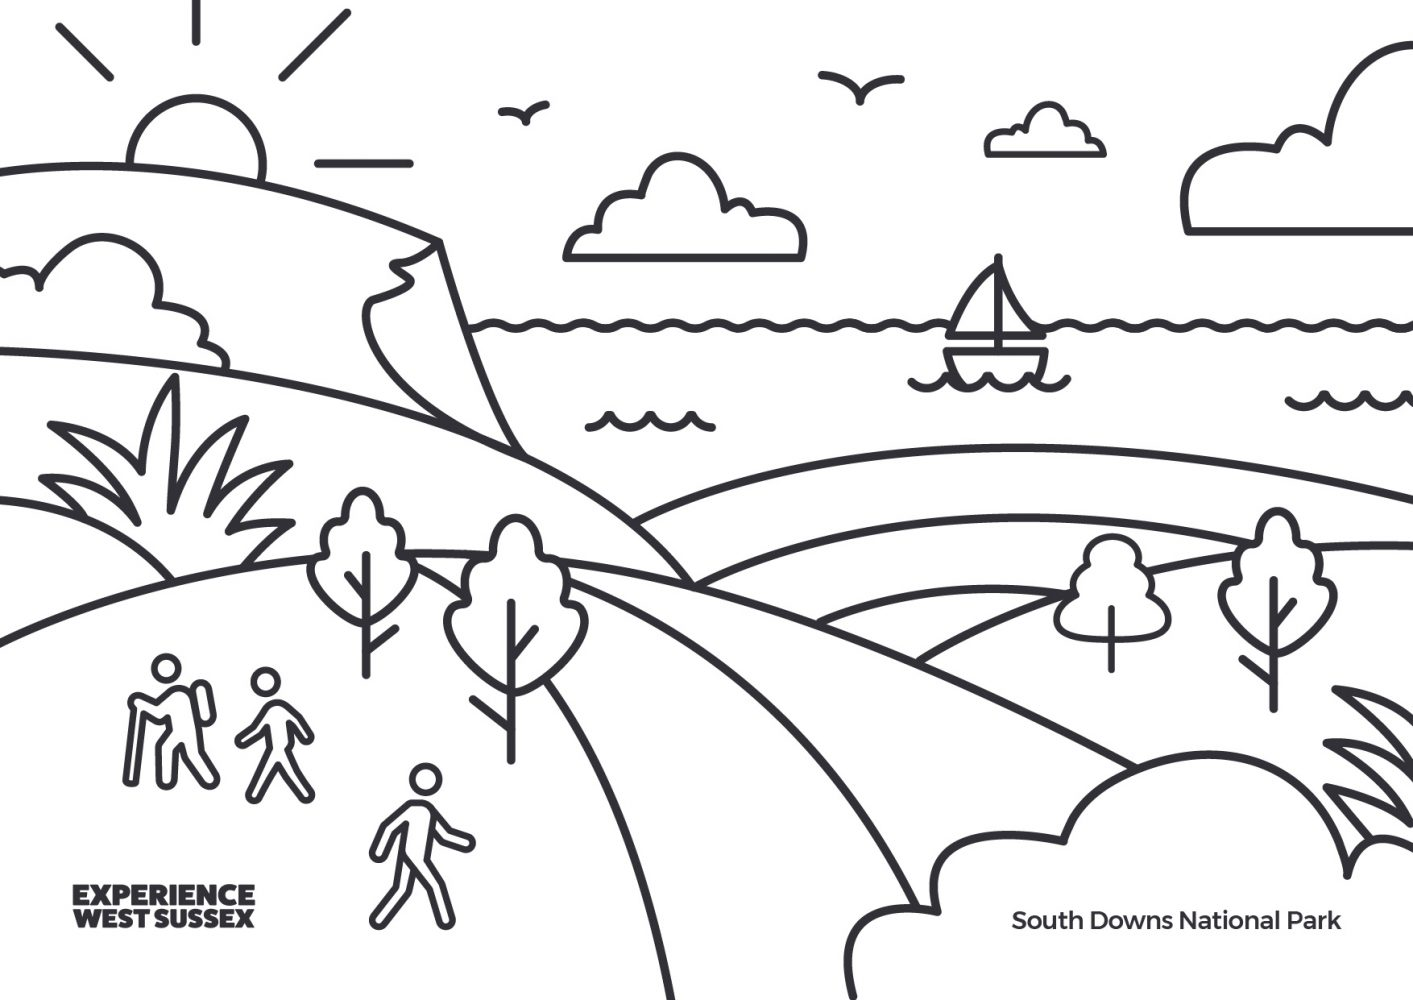 South Downs National Park colouring sheet